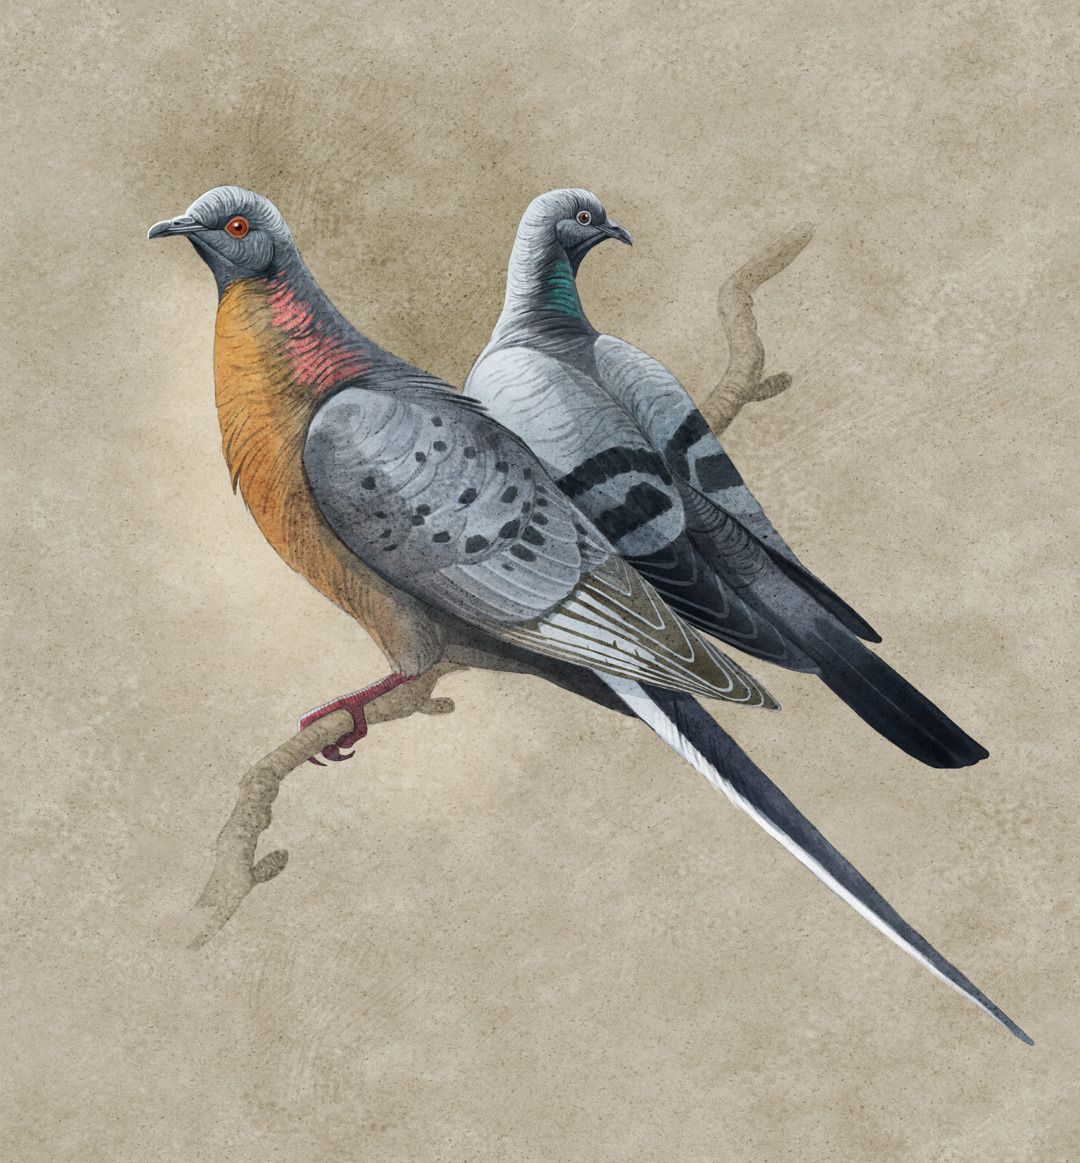 Paleoillustration passenger pigeon in 2020 De extinction